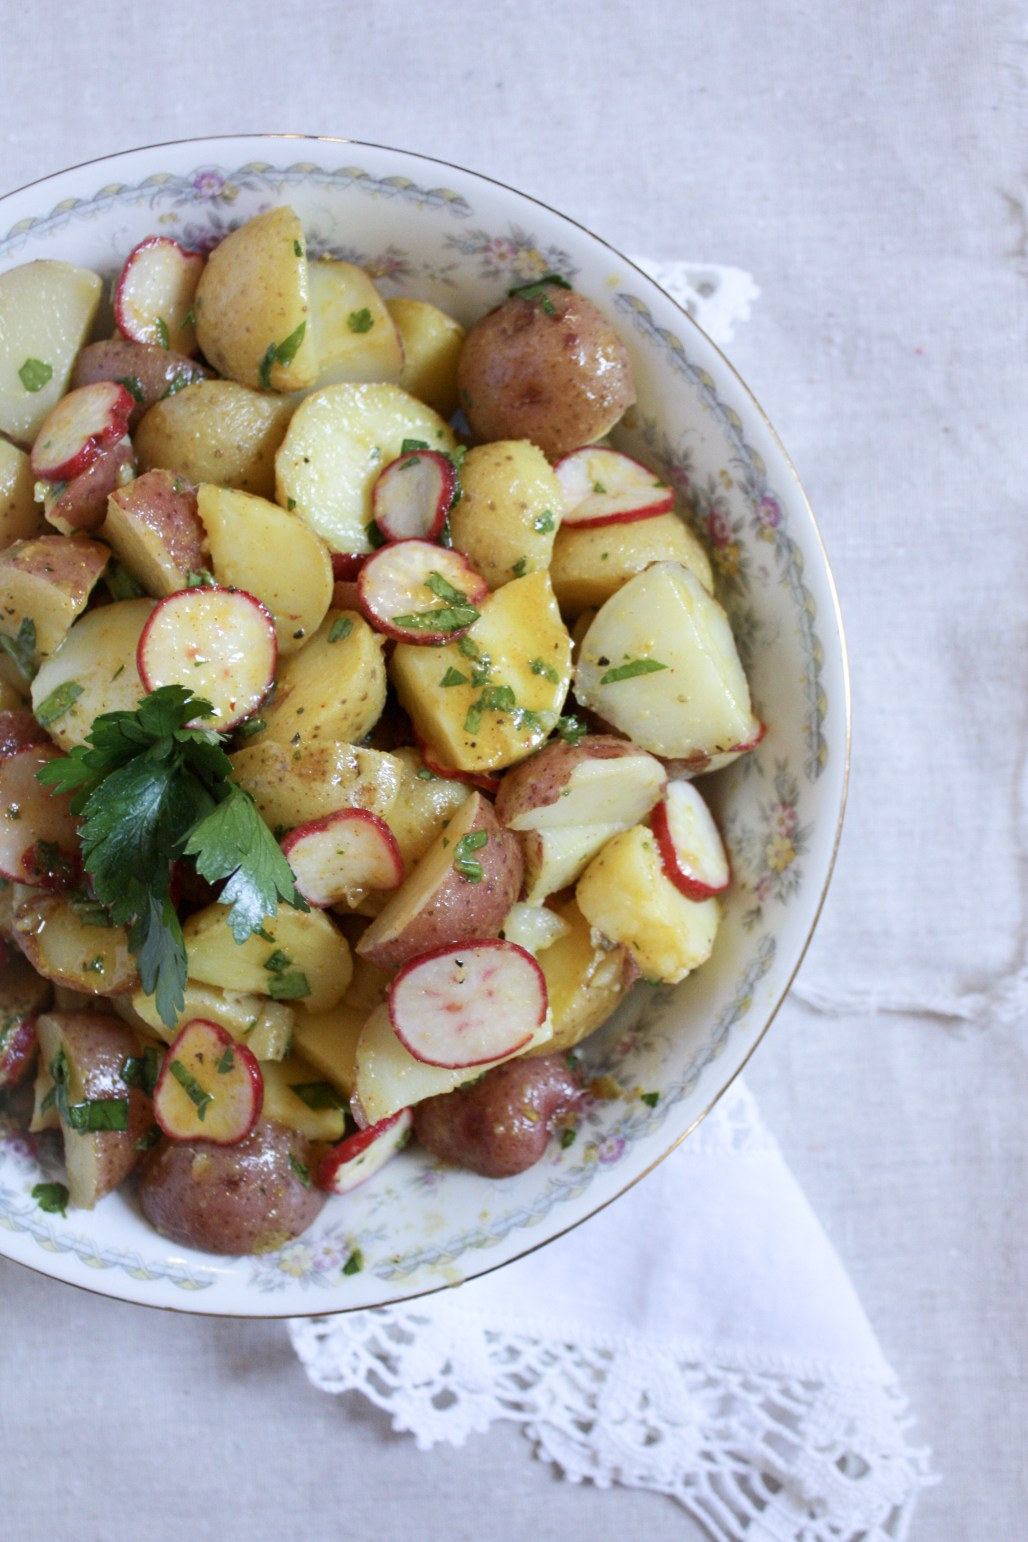 Lightened Heirloom Potato Salad with a Fresh Herb Mustard Dressing | Dreamery Events